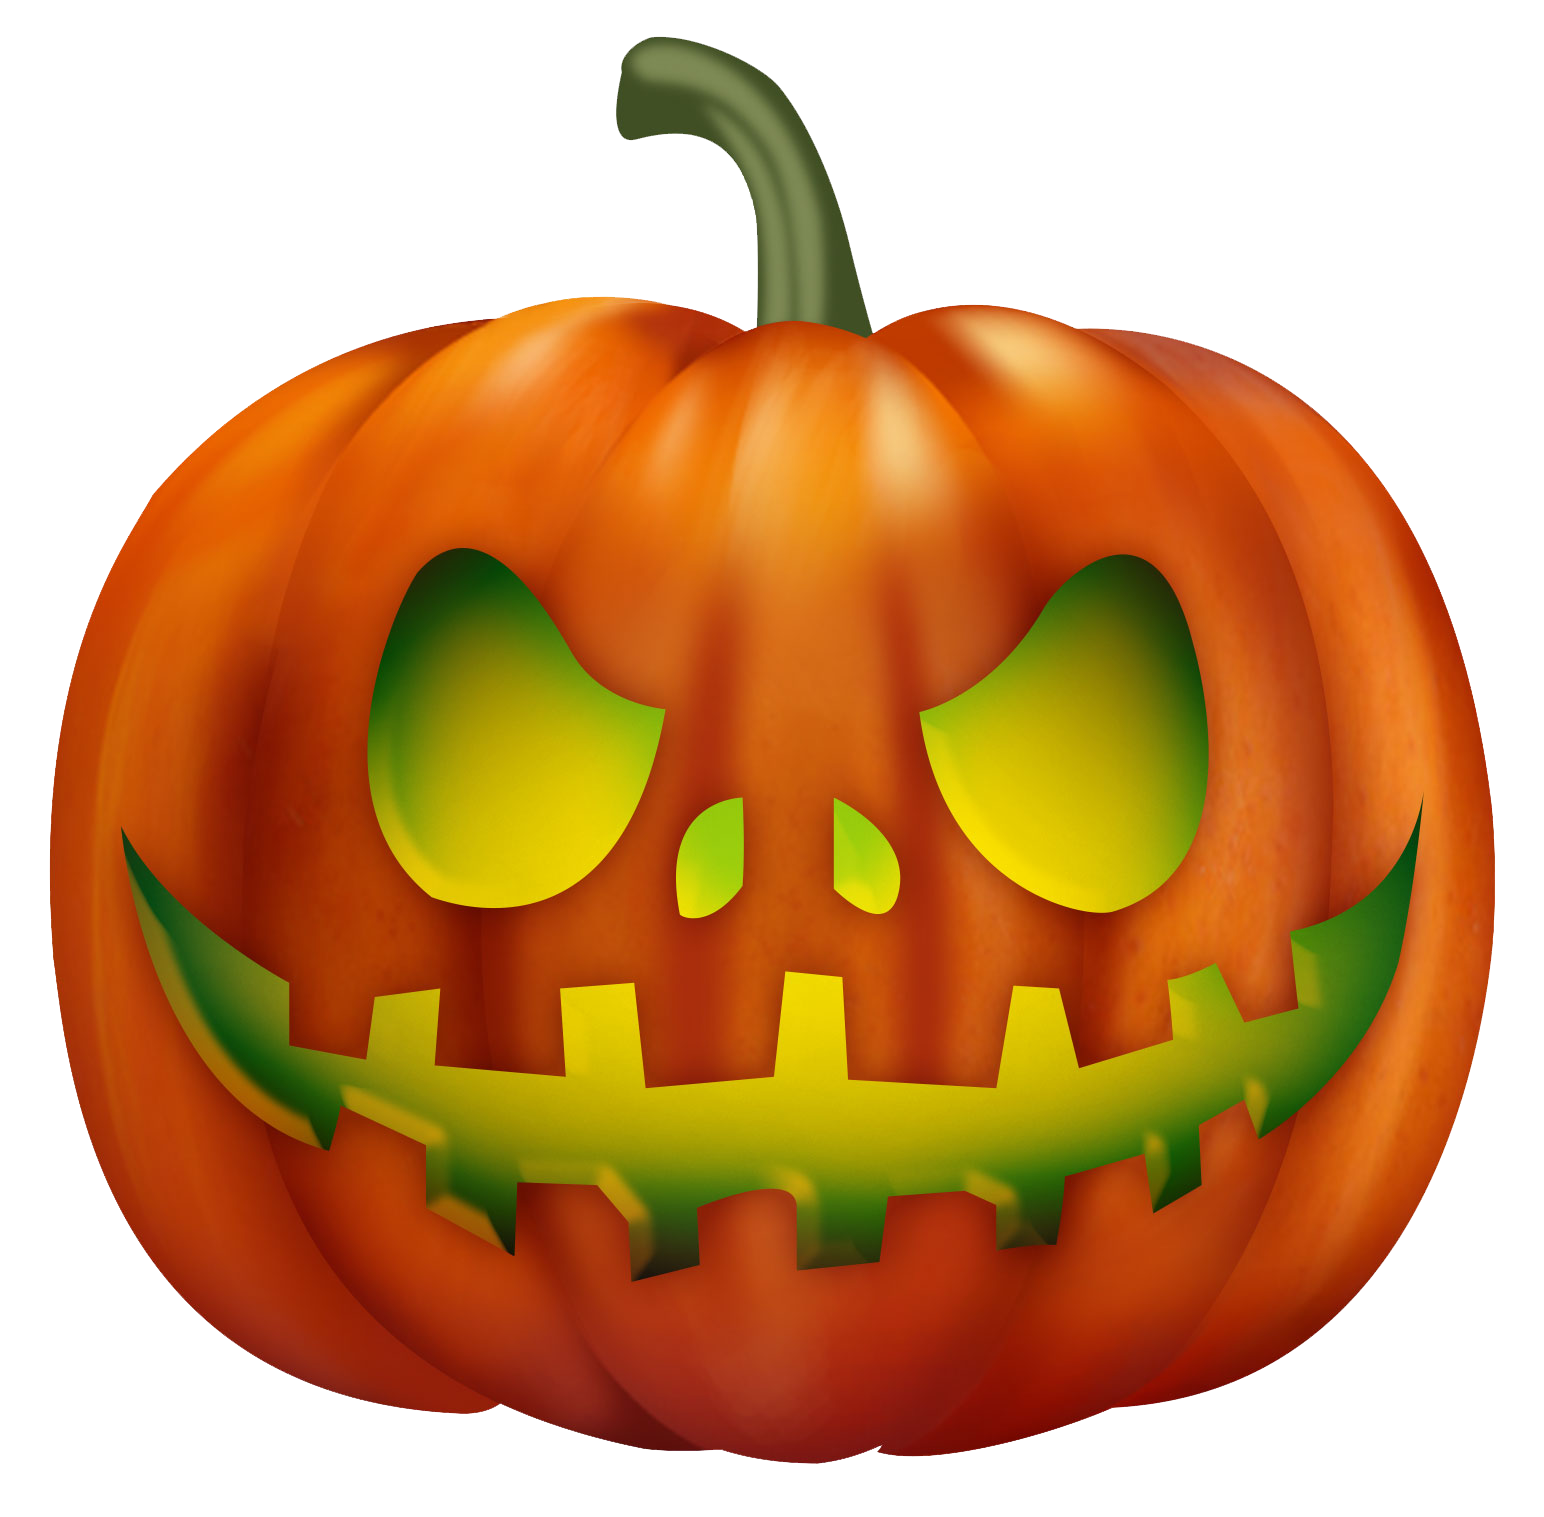 Smoking pumpkin clipart picture library library 7 2 Pumpkin Free Download Png picture library library